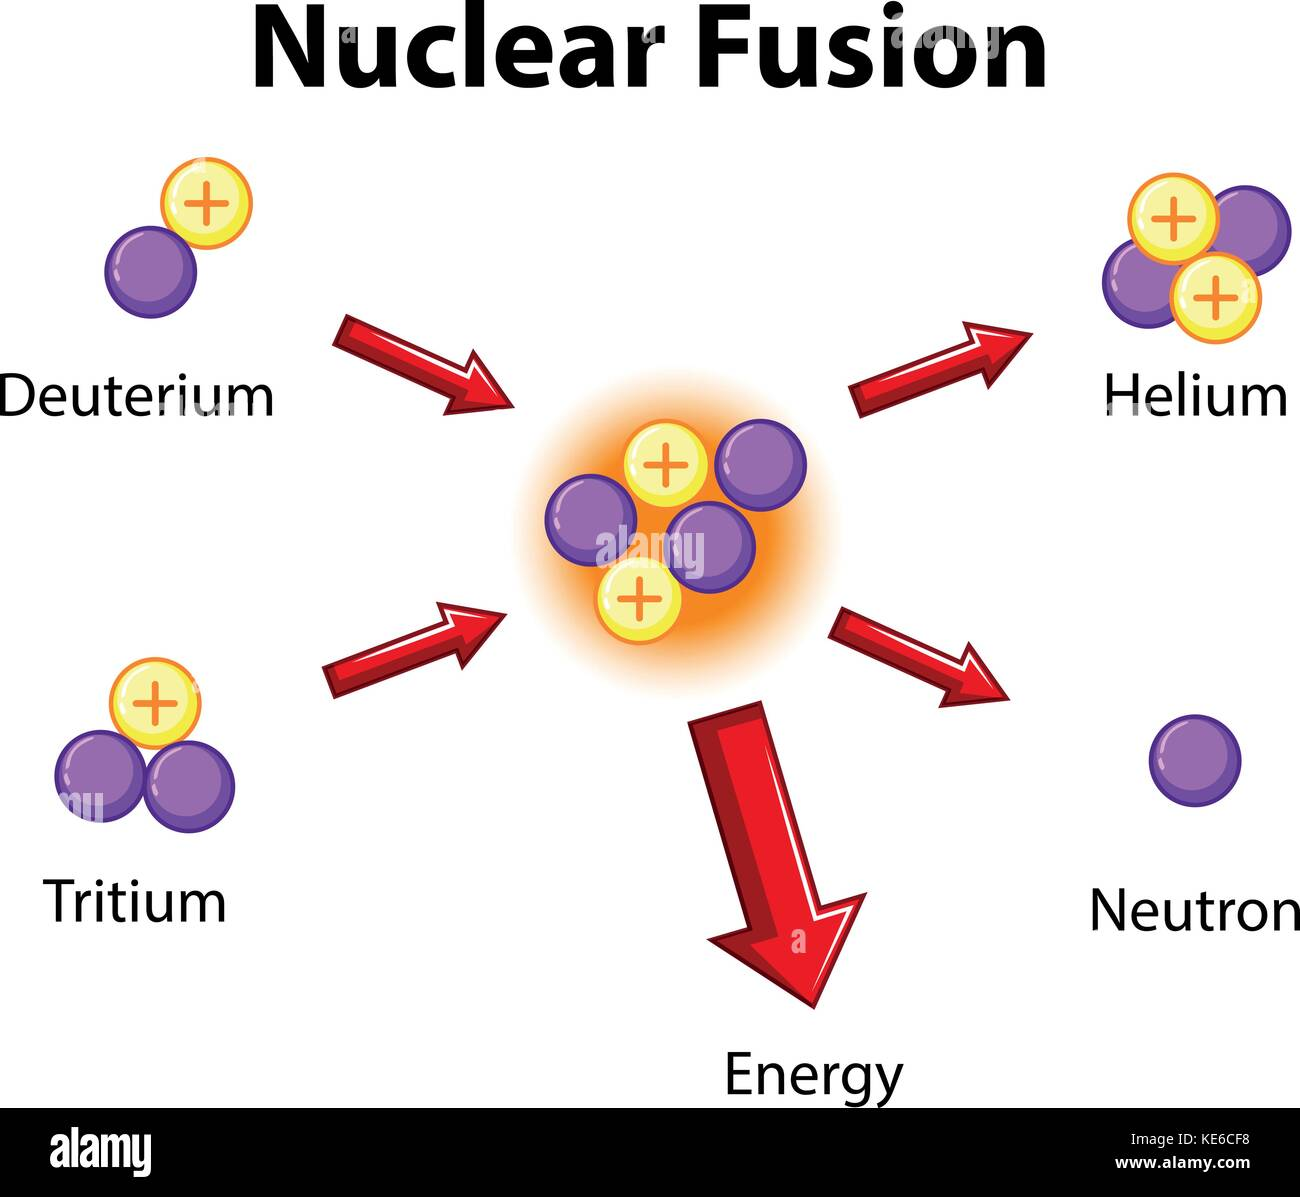 an analysis of nuclear fusion in chemistry Nuclear chemistry part 2: fusion and fission continuing our look at nuclear chemistry, hank takes this episode to talk about fusion and fission.